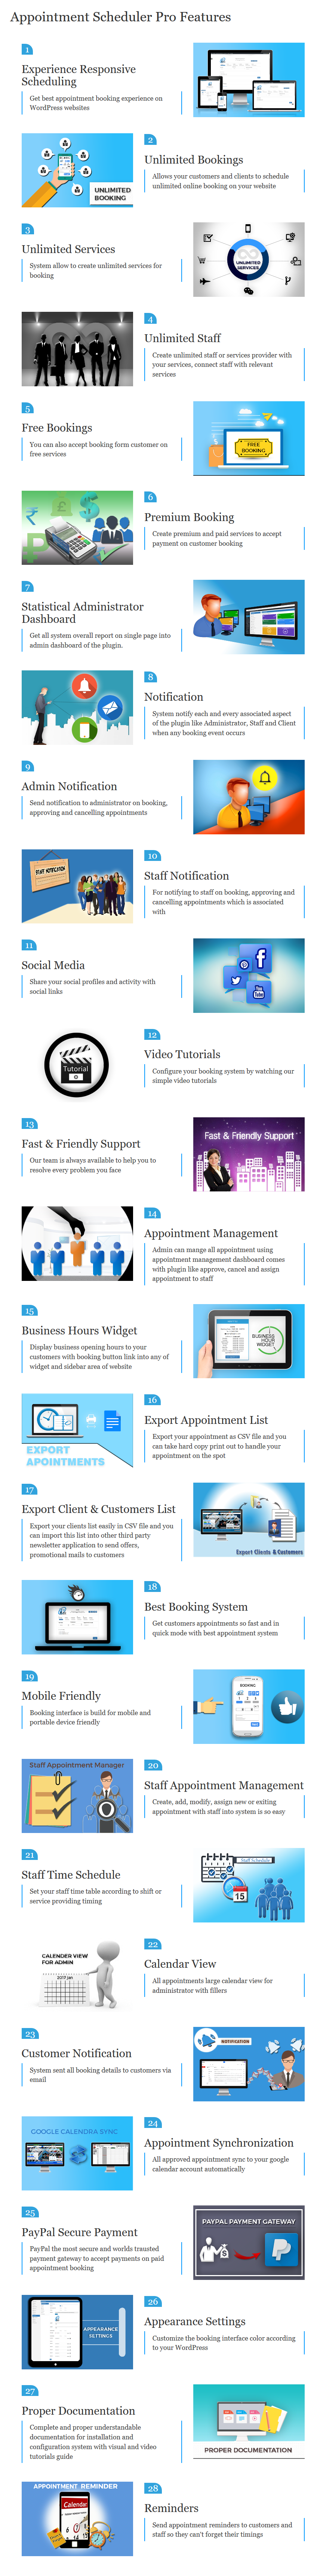 appointment-scheduler-pro